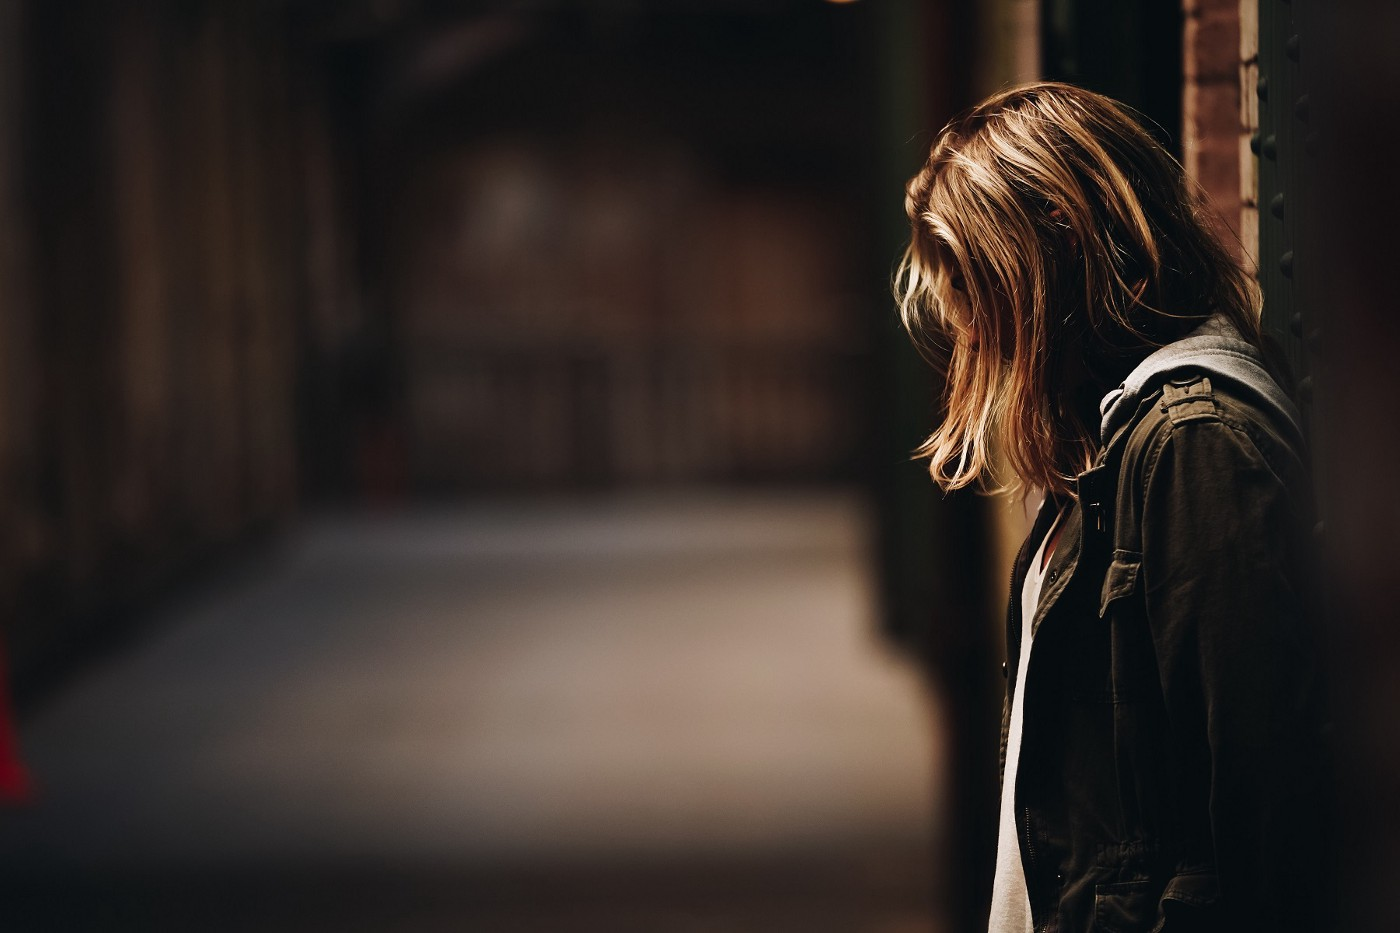 woman leaning against wall facing down & depressed